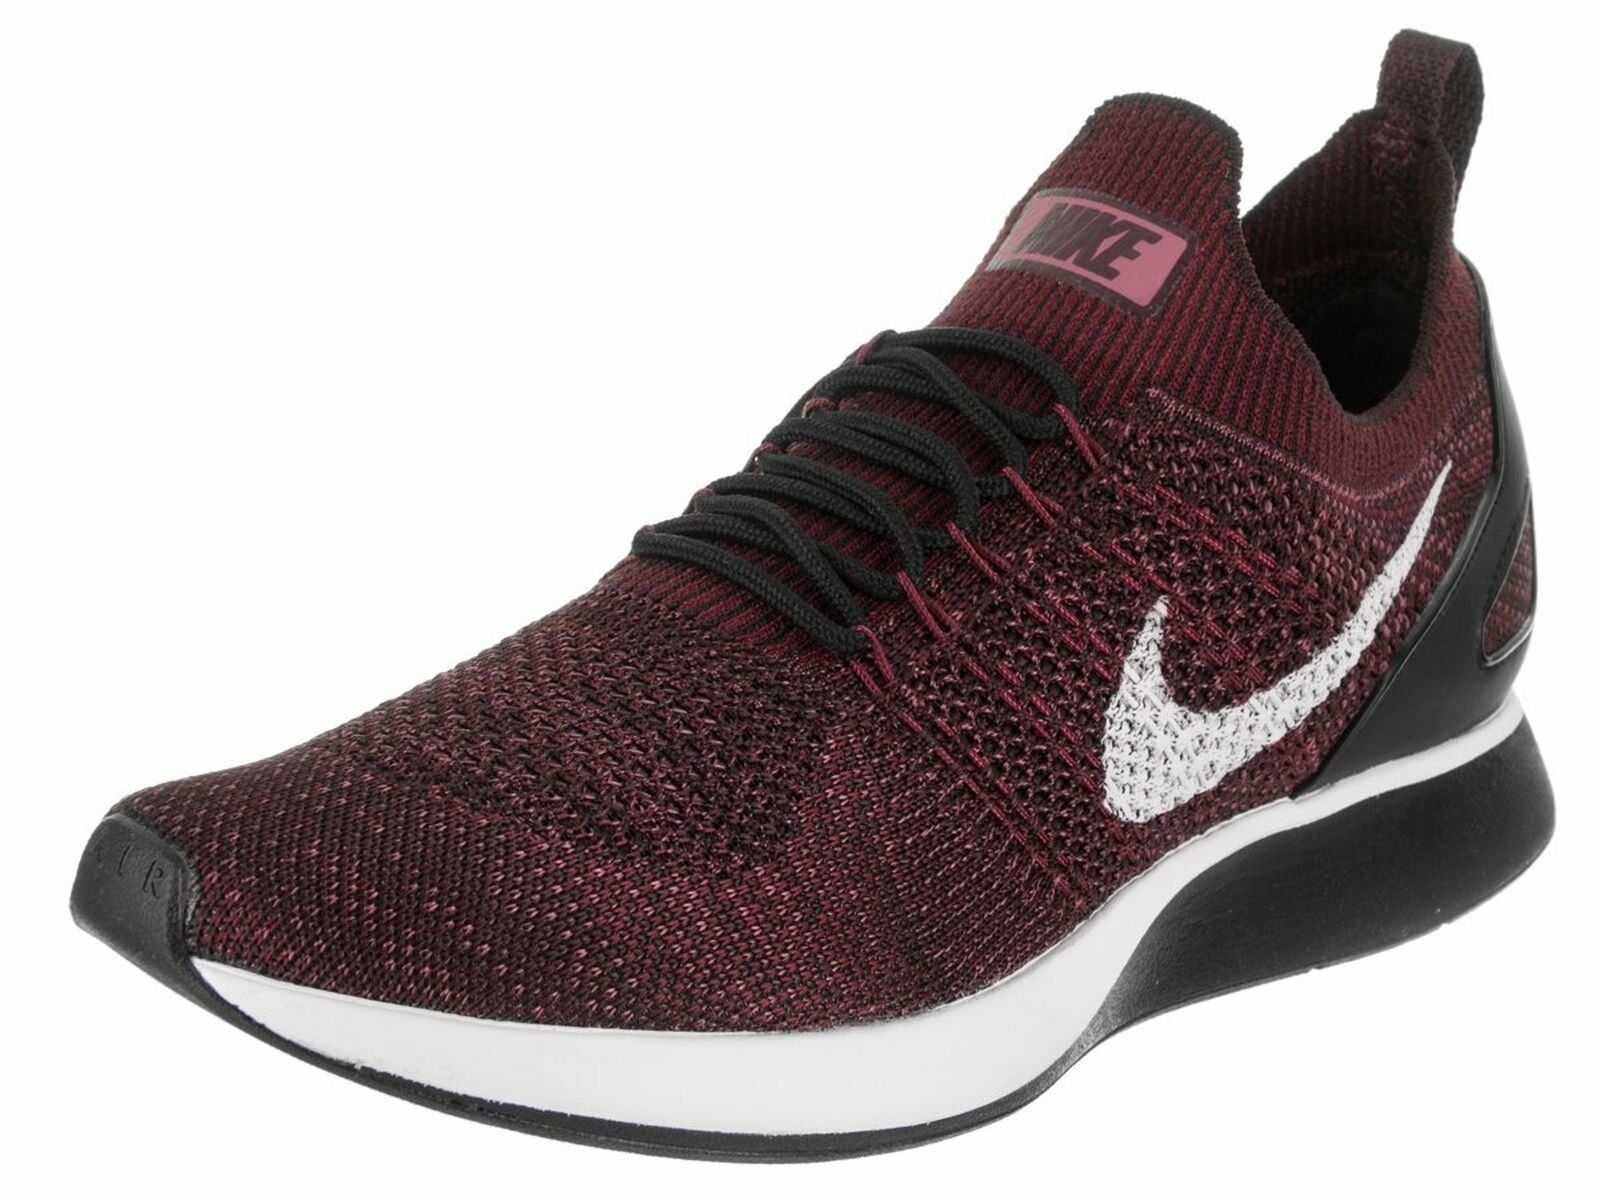 NIKE Air Zoom Mariah Flyknit Racer Men's shoes  Deep Burgundy  Size 13 Medium